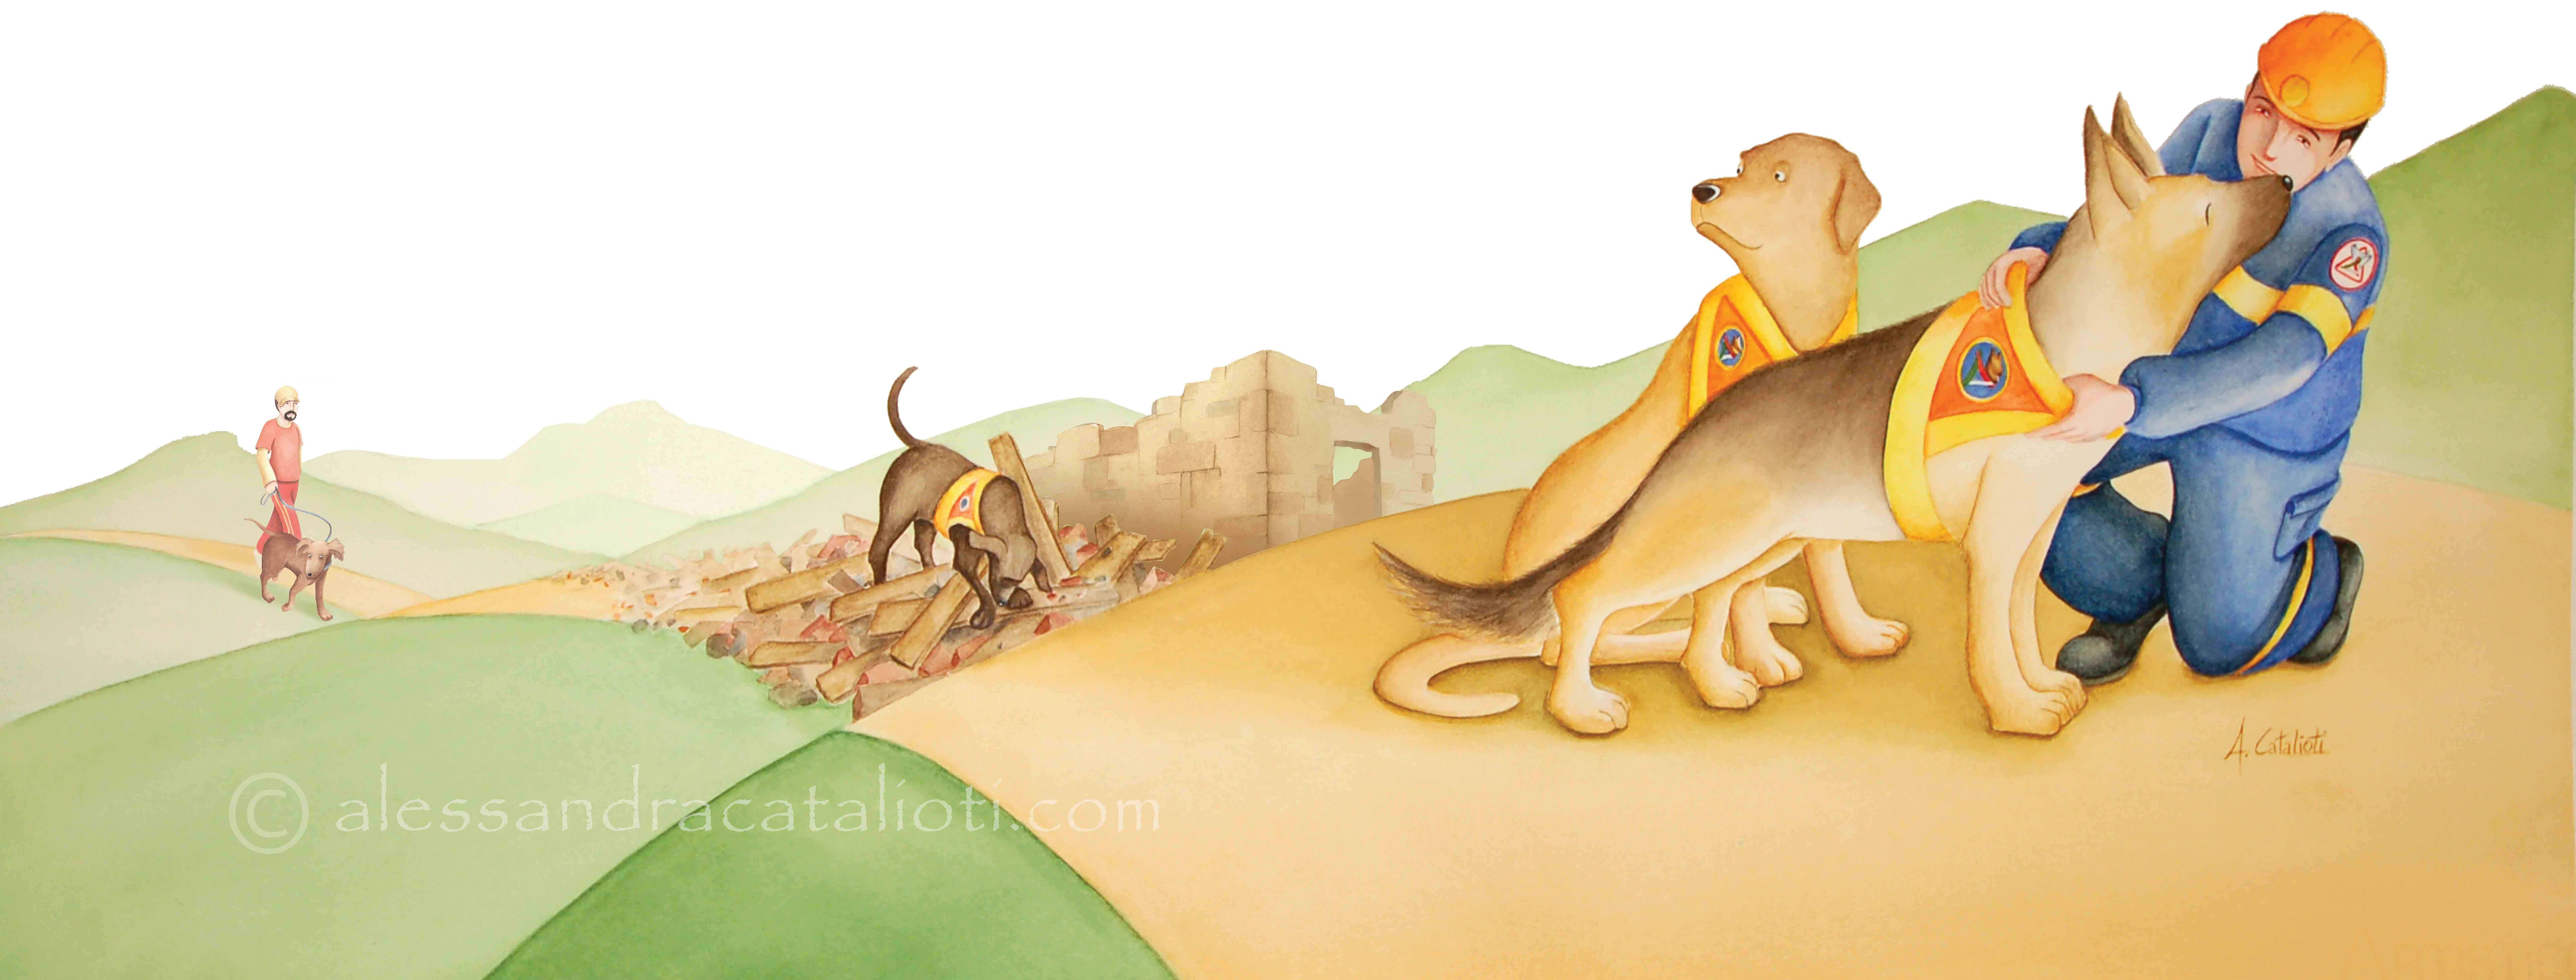 An advertising illustration to represent the activities done in the kennel club